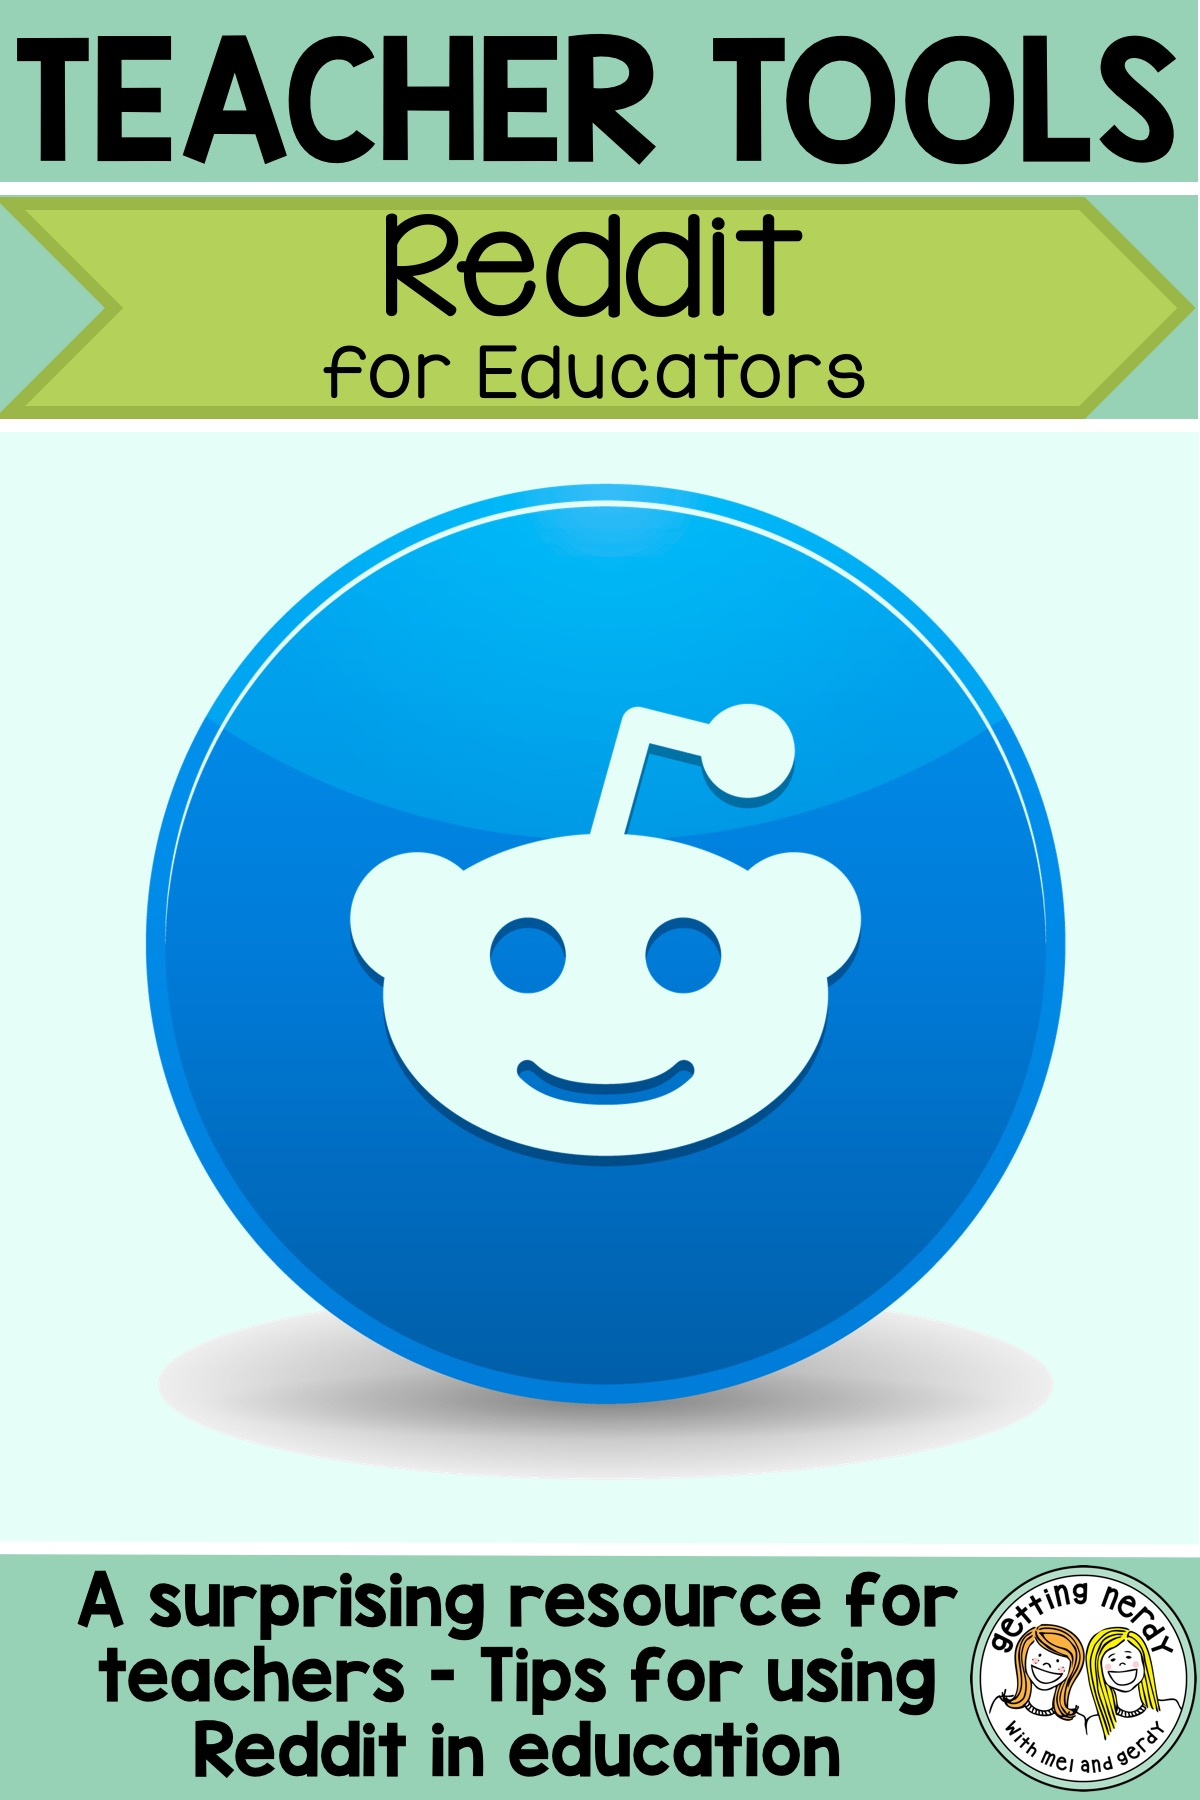 A great tool for teachers, just do a simple search on Reddit and see what\'s trending in the educational world #gettingnerdyscience #teachertools